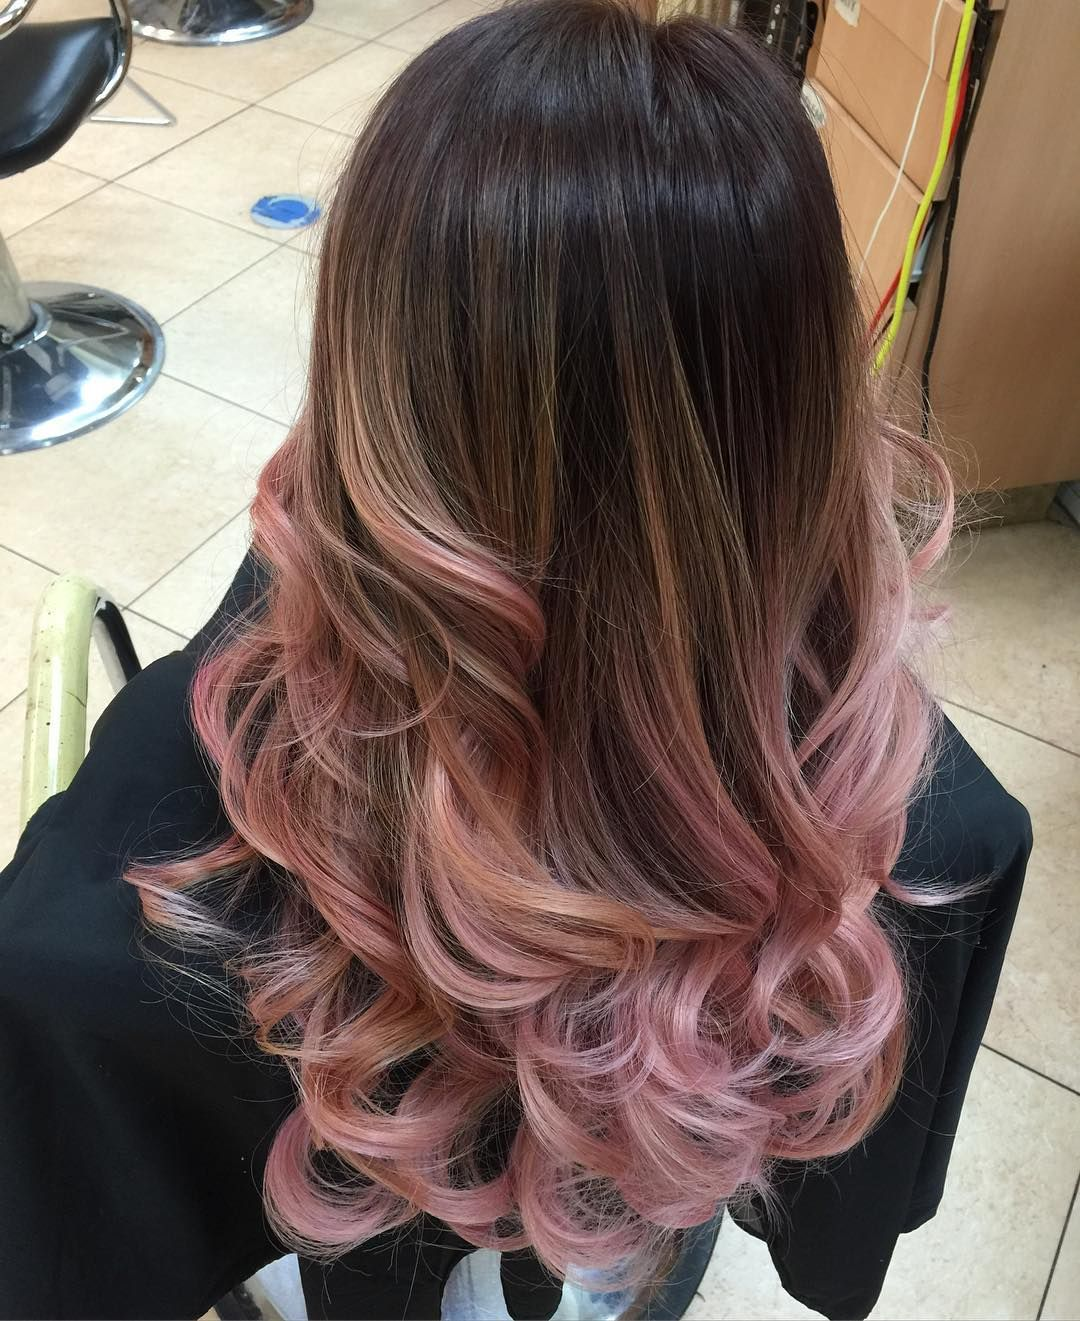 Strawberryswirl Candyhair Mylilpony Behindthechair Modernsalon Colorcorrection Rosegold Rosegoldhair Hairpor Balayage Hair Red Balayage Hair Hairstyle